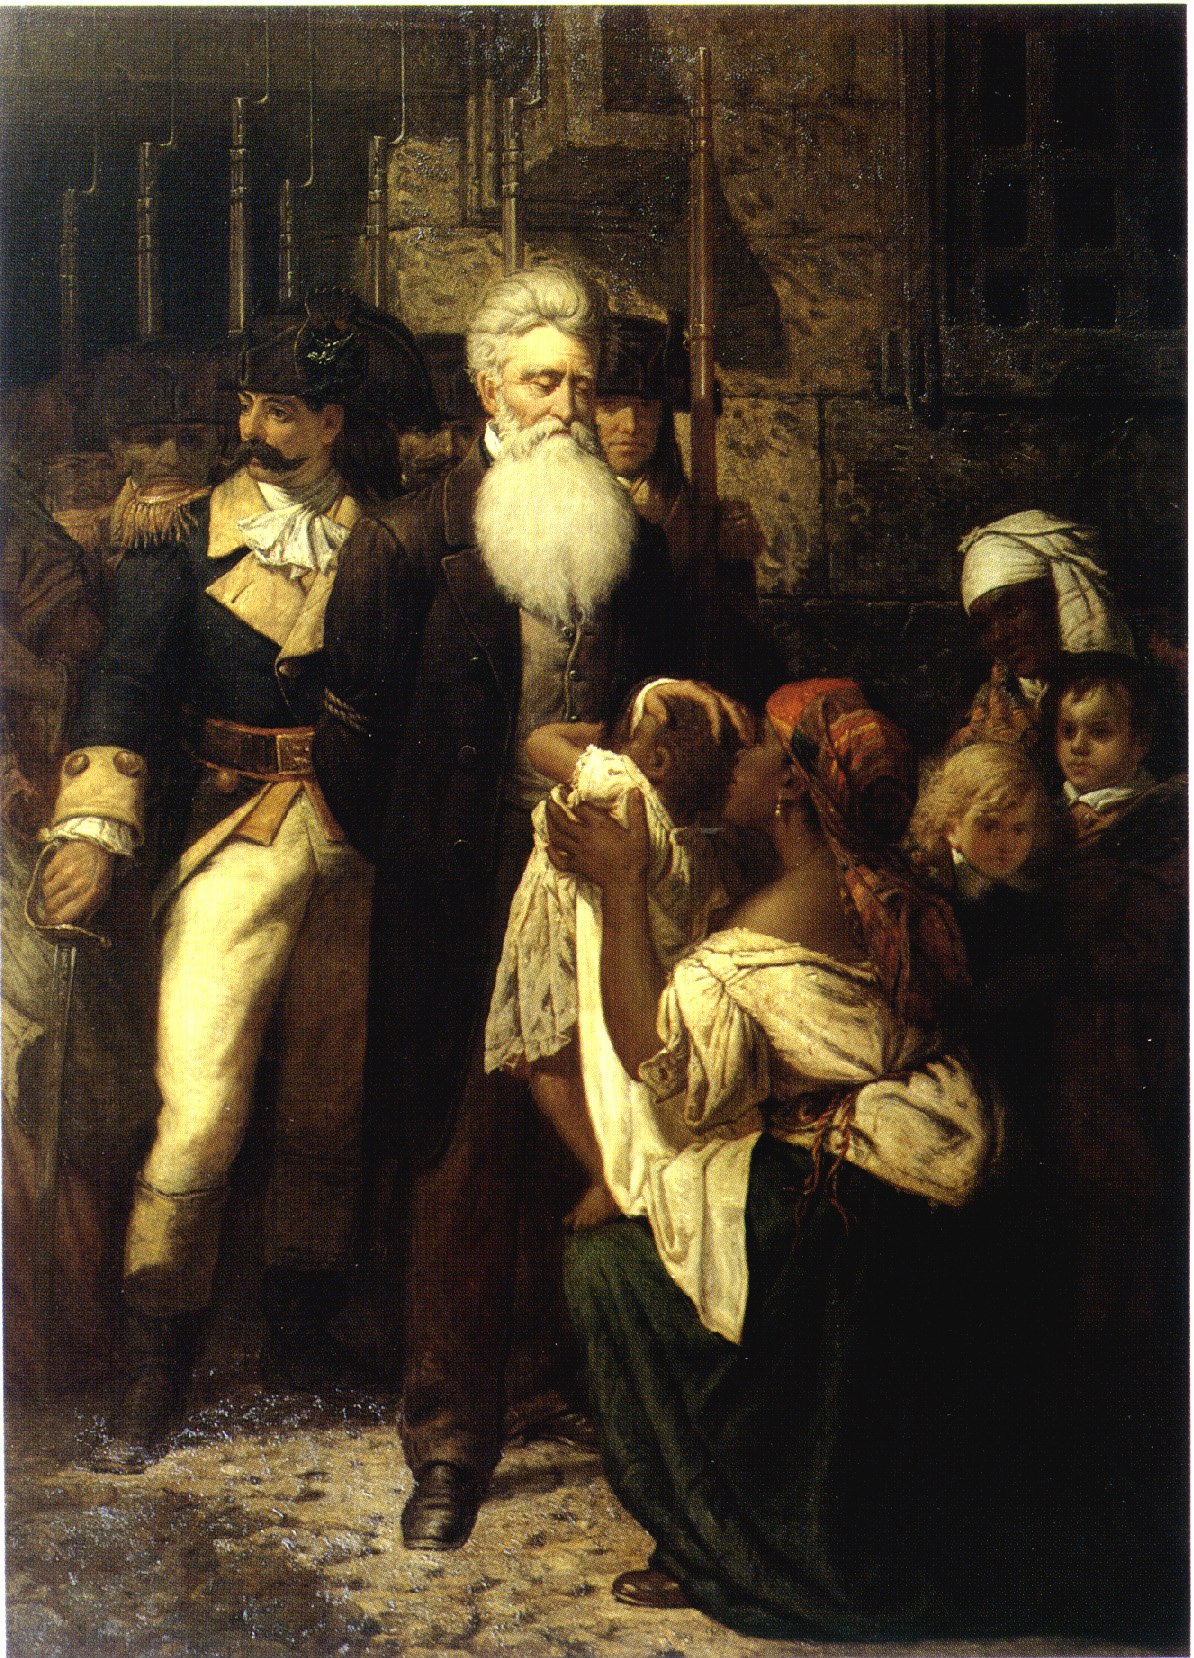 JohnBrown's Blessing.1867.Thomas Satterwhite Noble